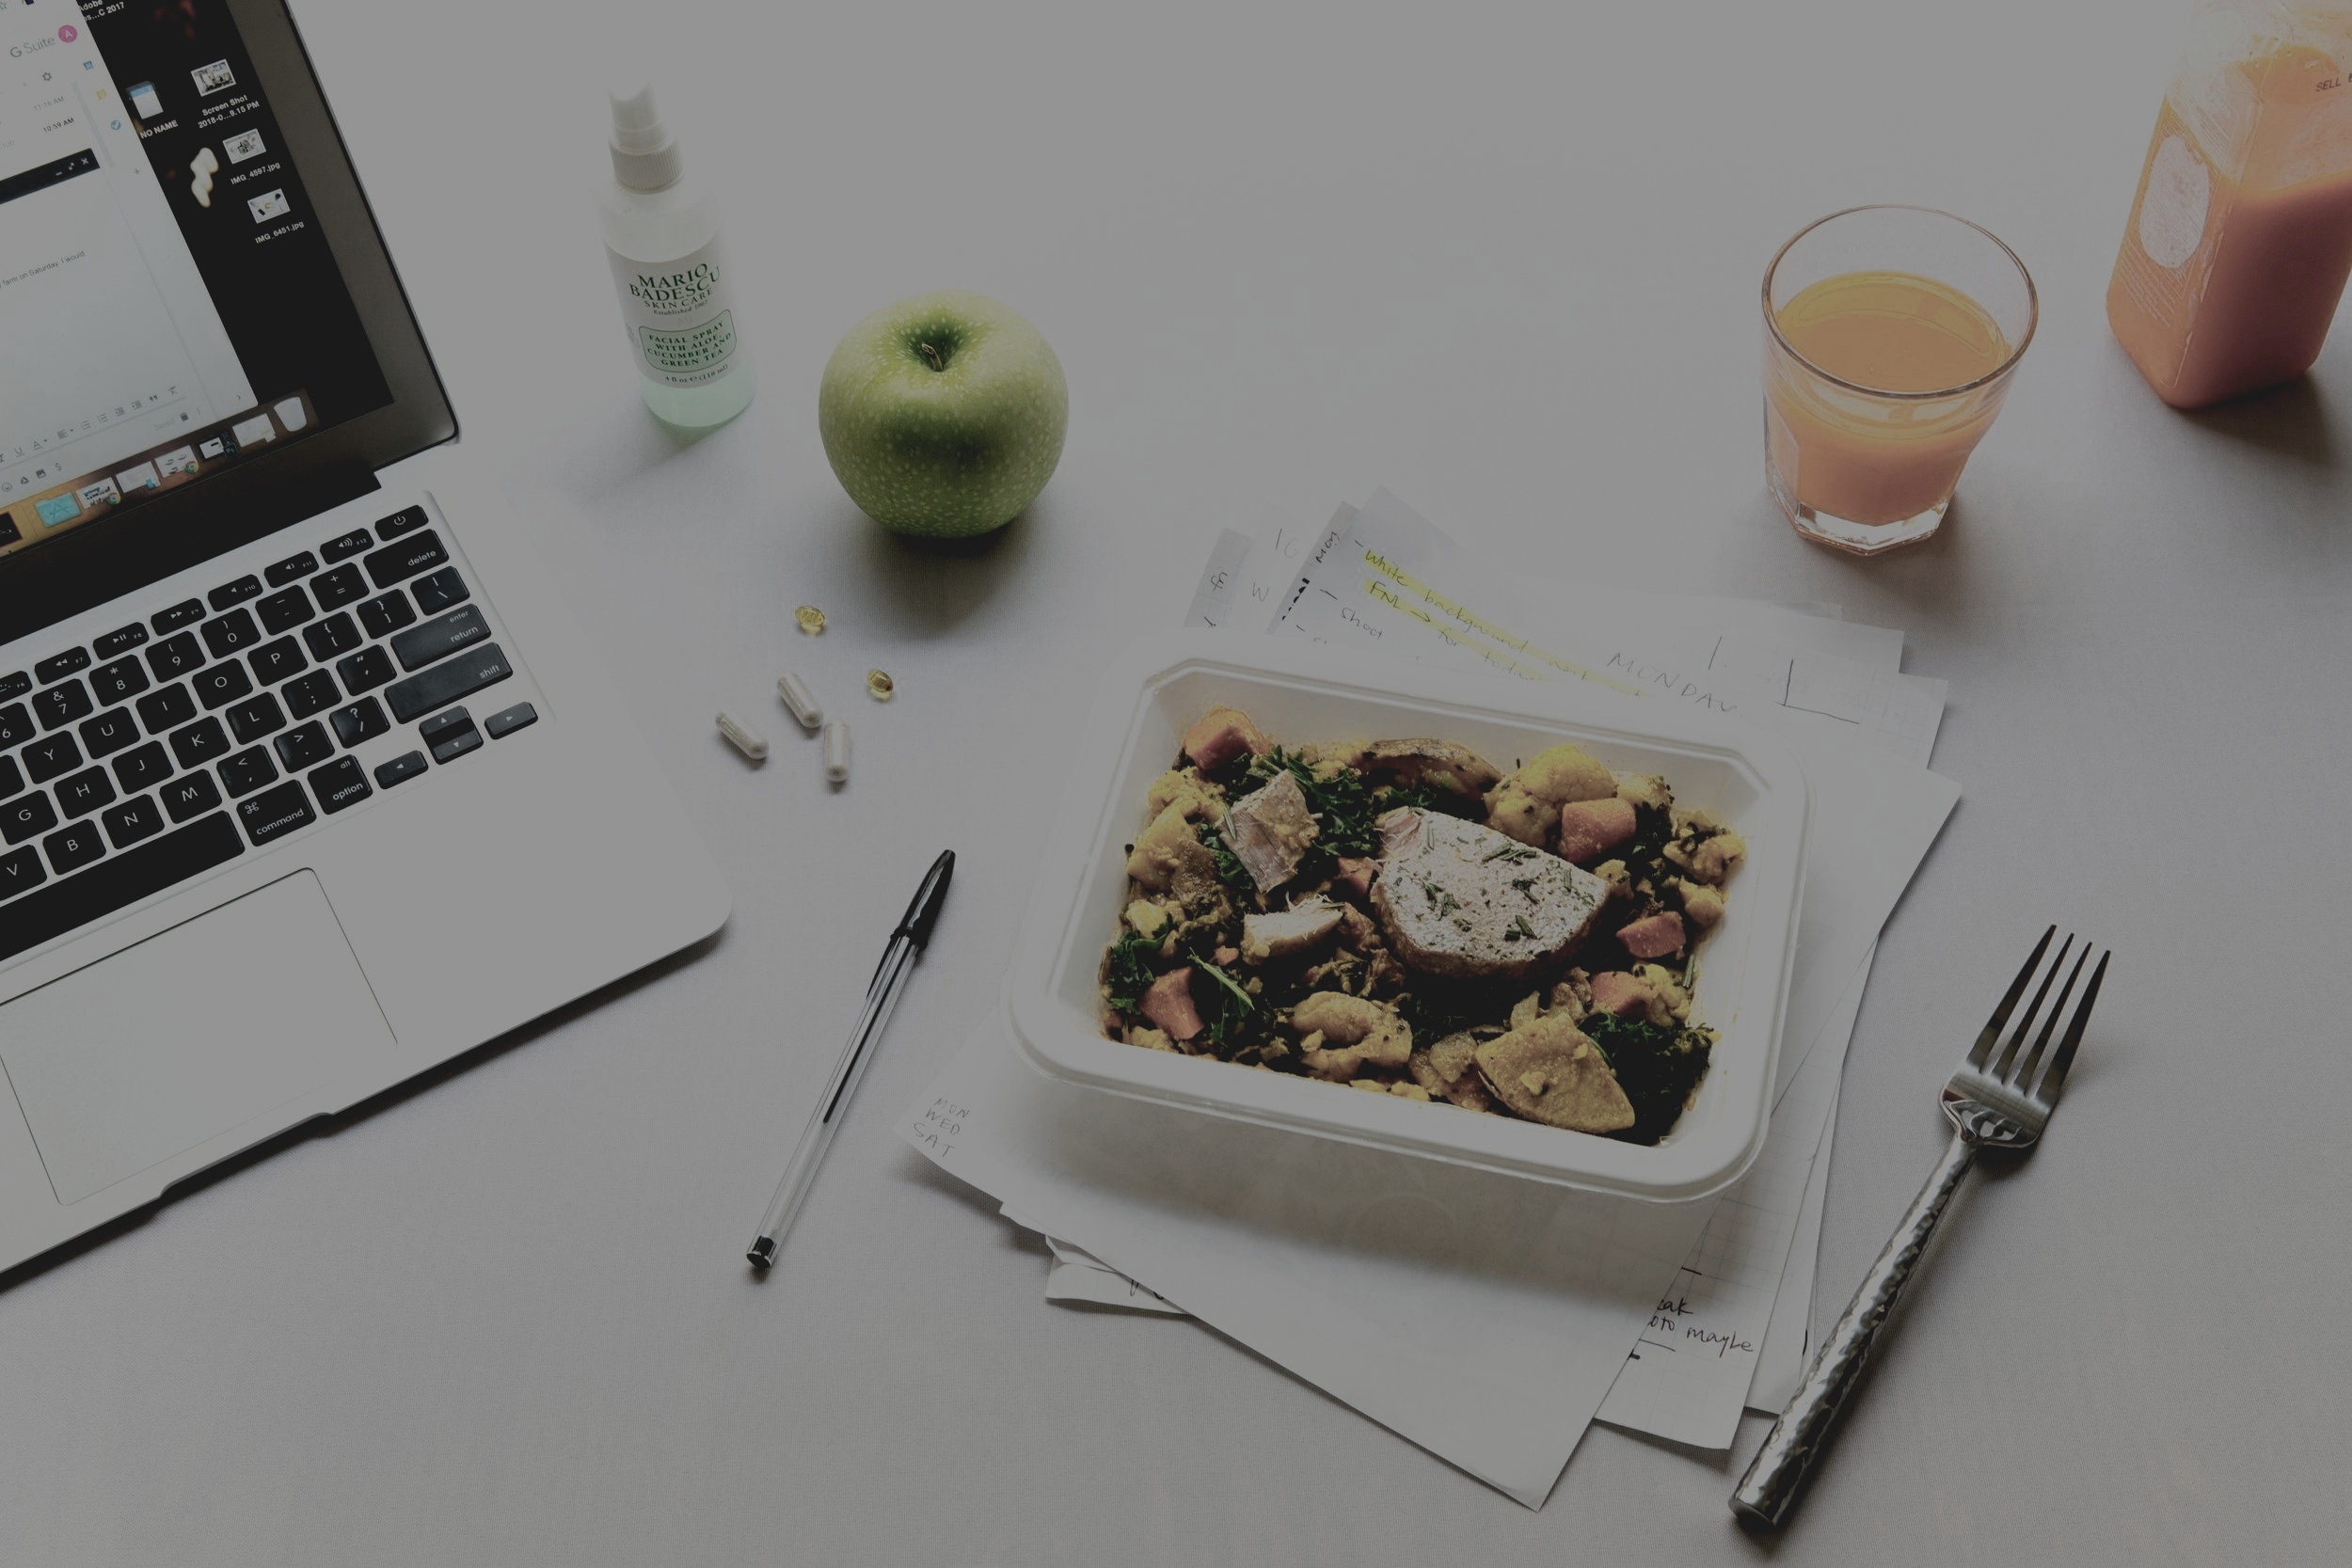 Bring your practice to a whole new level - …with our scientific algorithm, customizable meal plan templates, and client management & interaction tools.